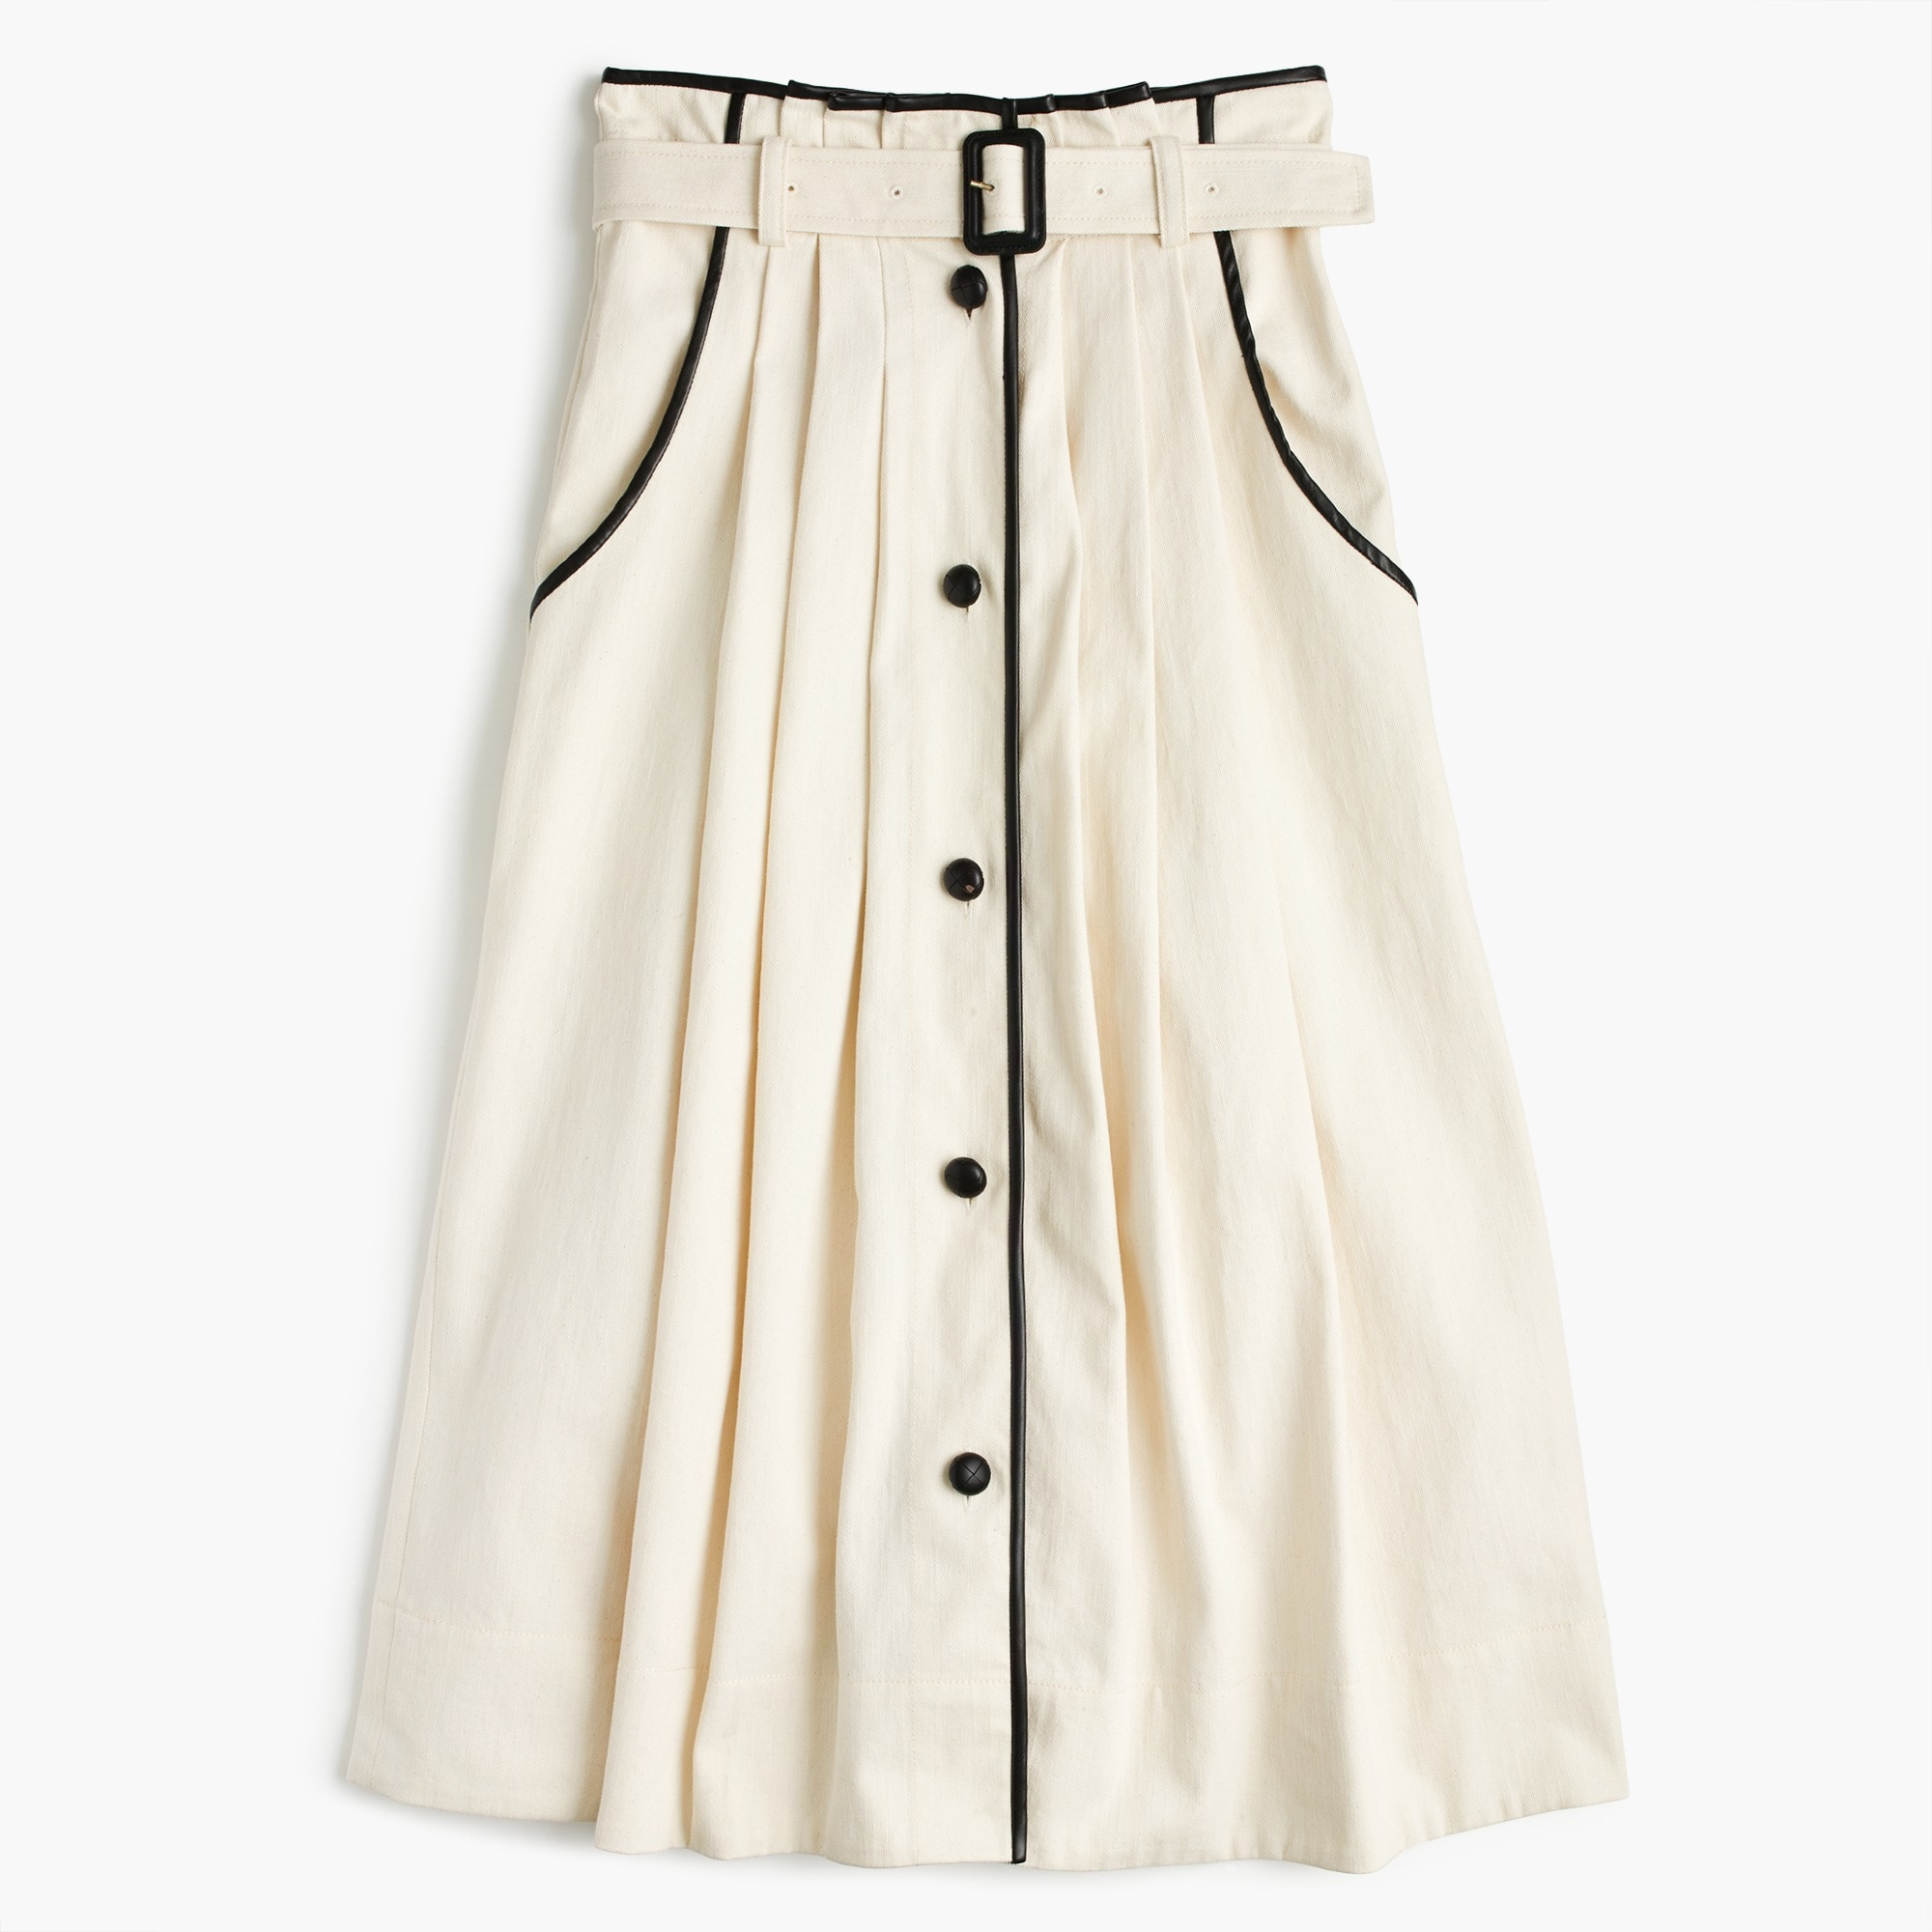 Image 2 for Collection pleated skirt in natural denim with leather